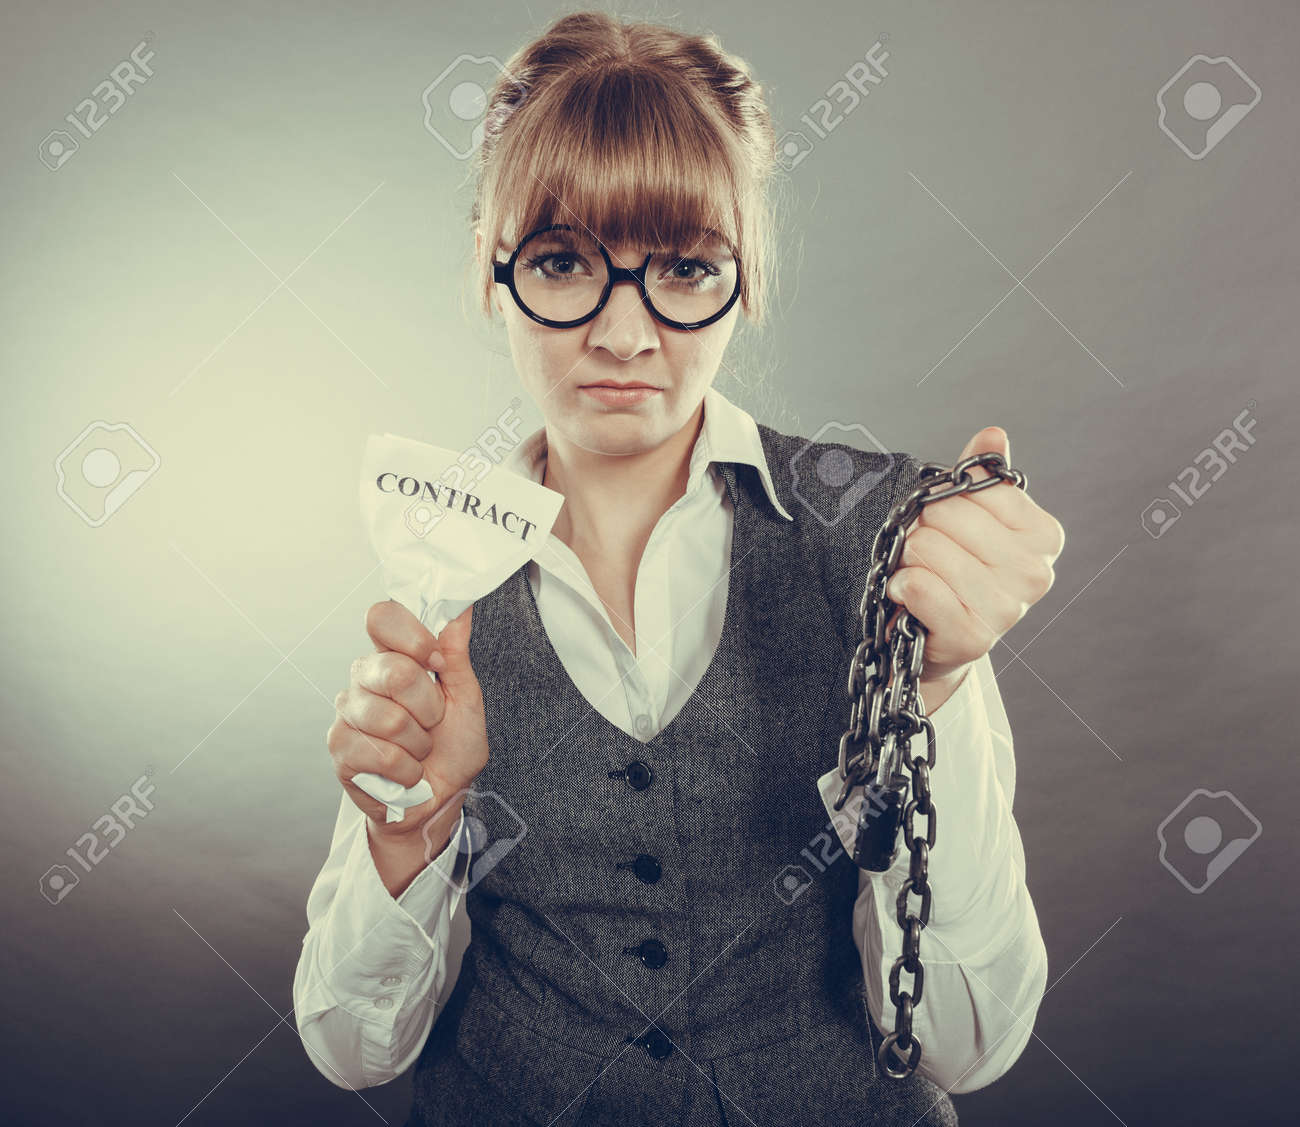 Businesswoman Woman Ending Agreement Deal Young Girl Holding